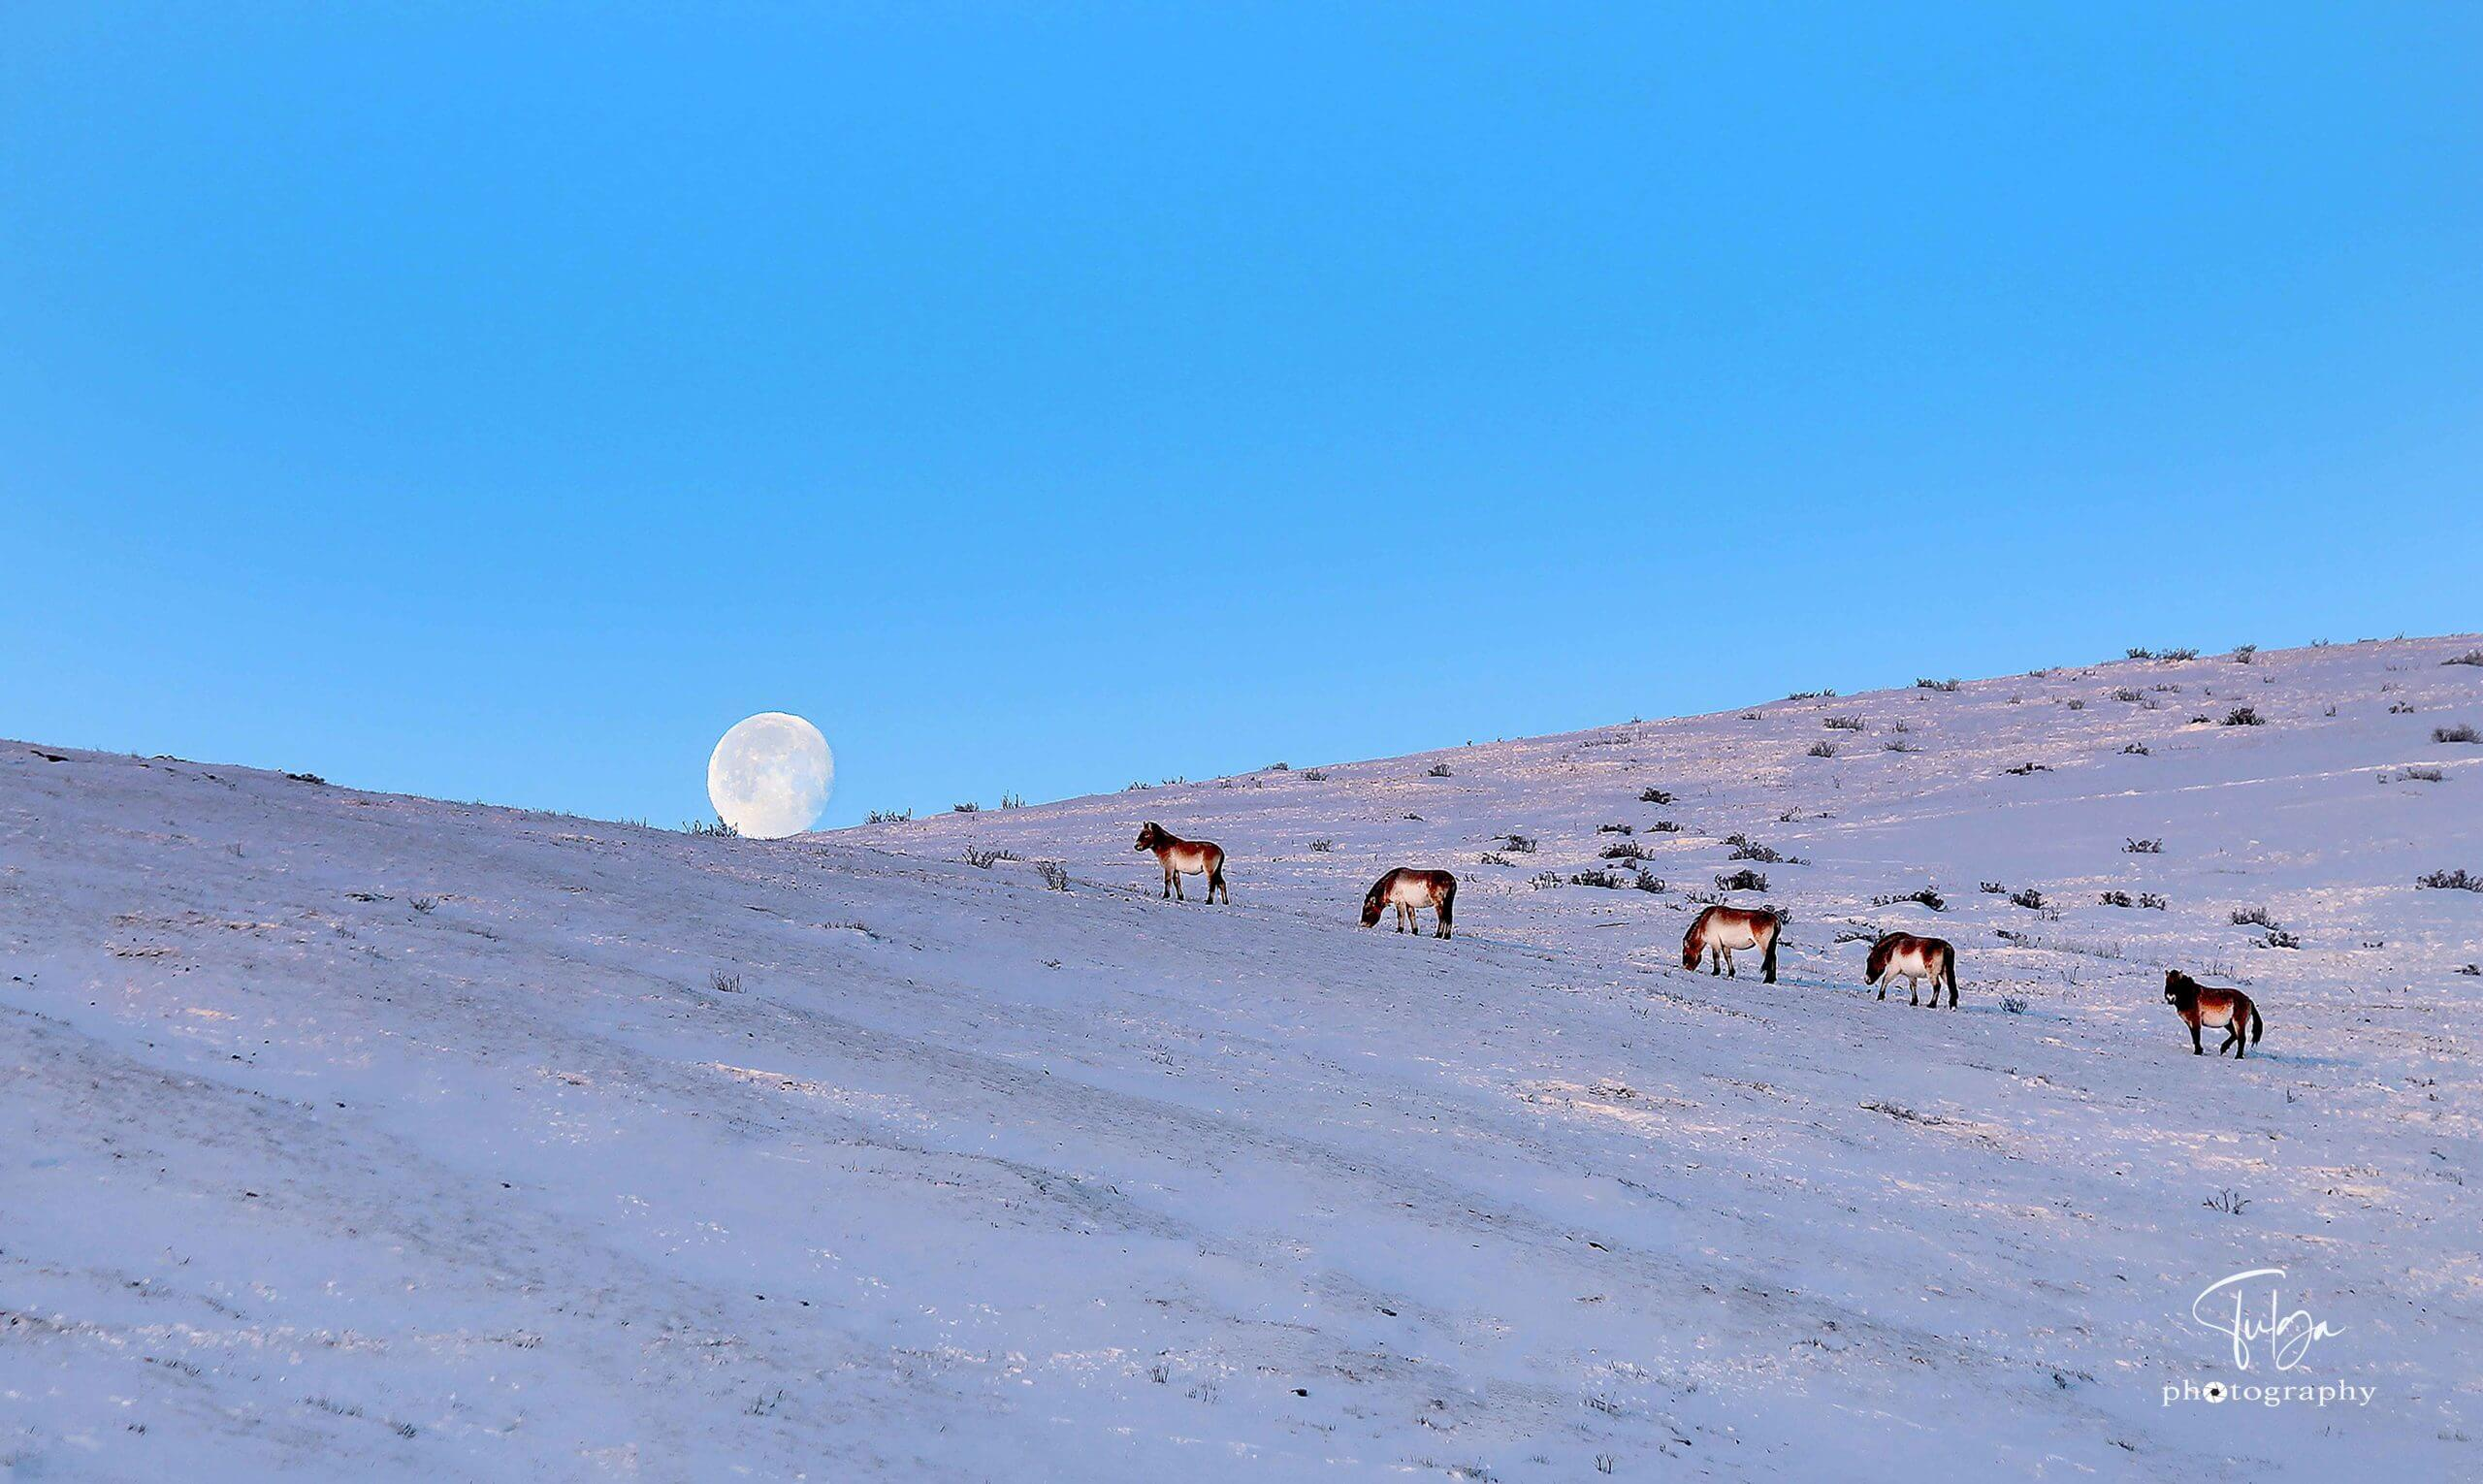 short tour mongolia to khustai national park - takhi horses with winter scenery